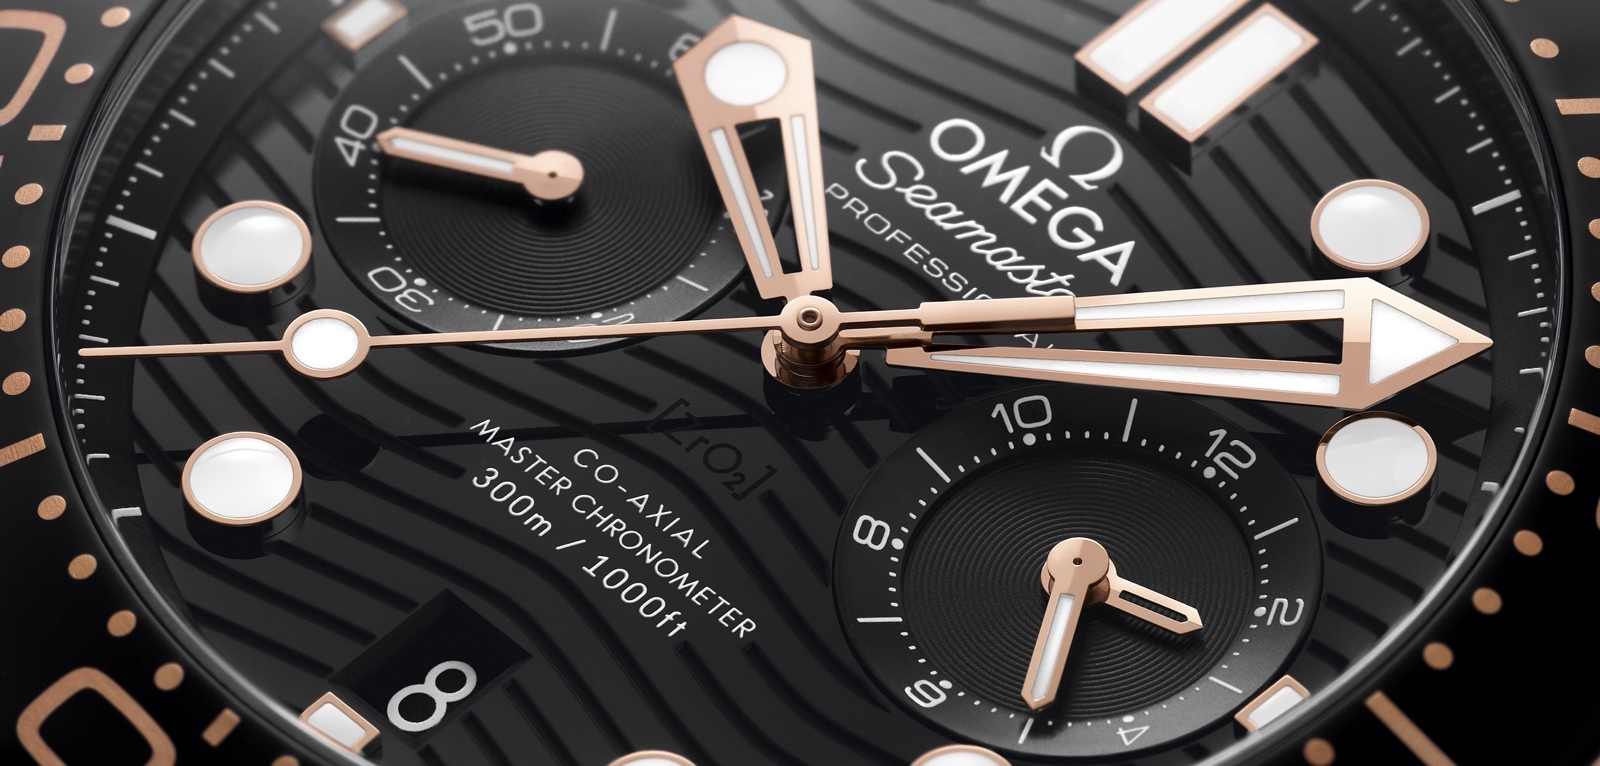 Omega Seamaster Diver 300M Chronograph Cover